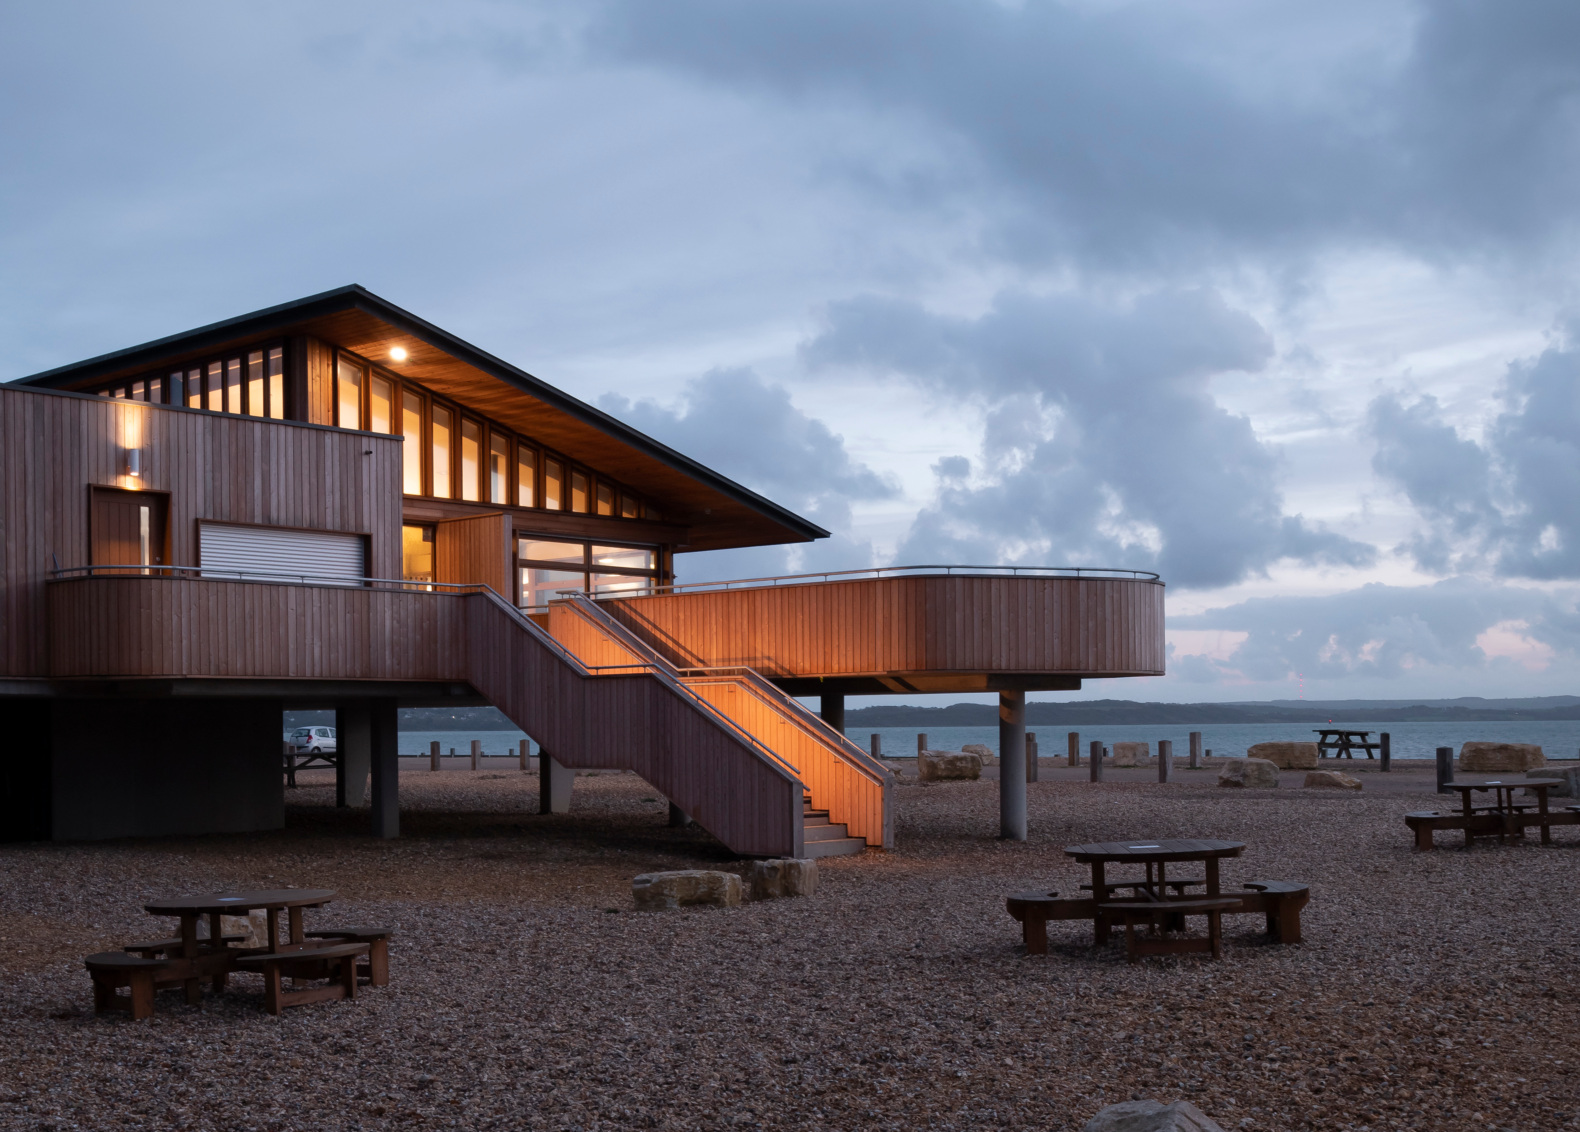 Concrete fins protect this visitor center from rising tides